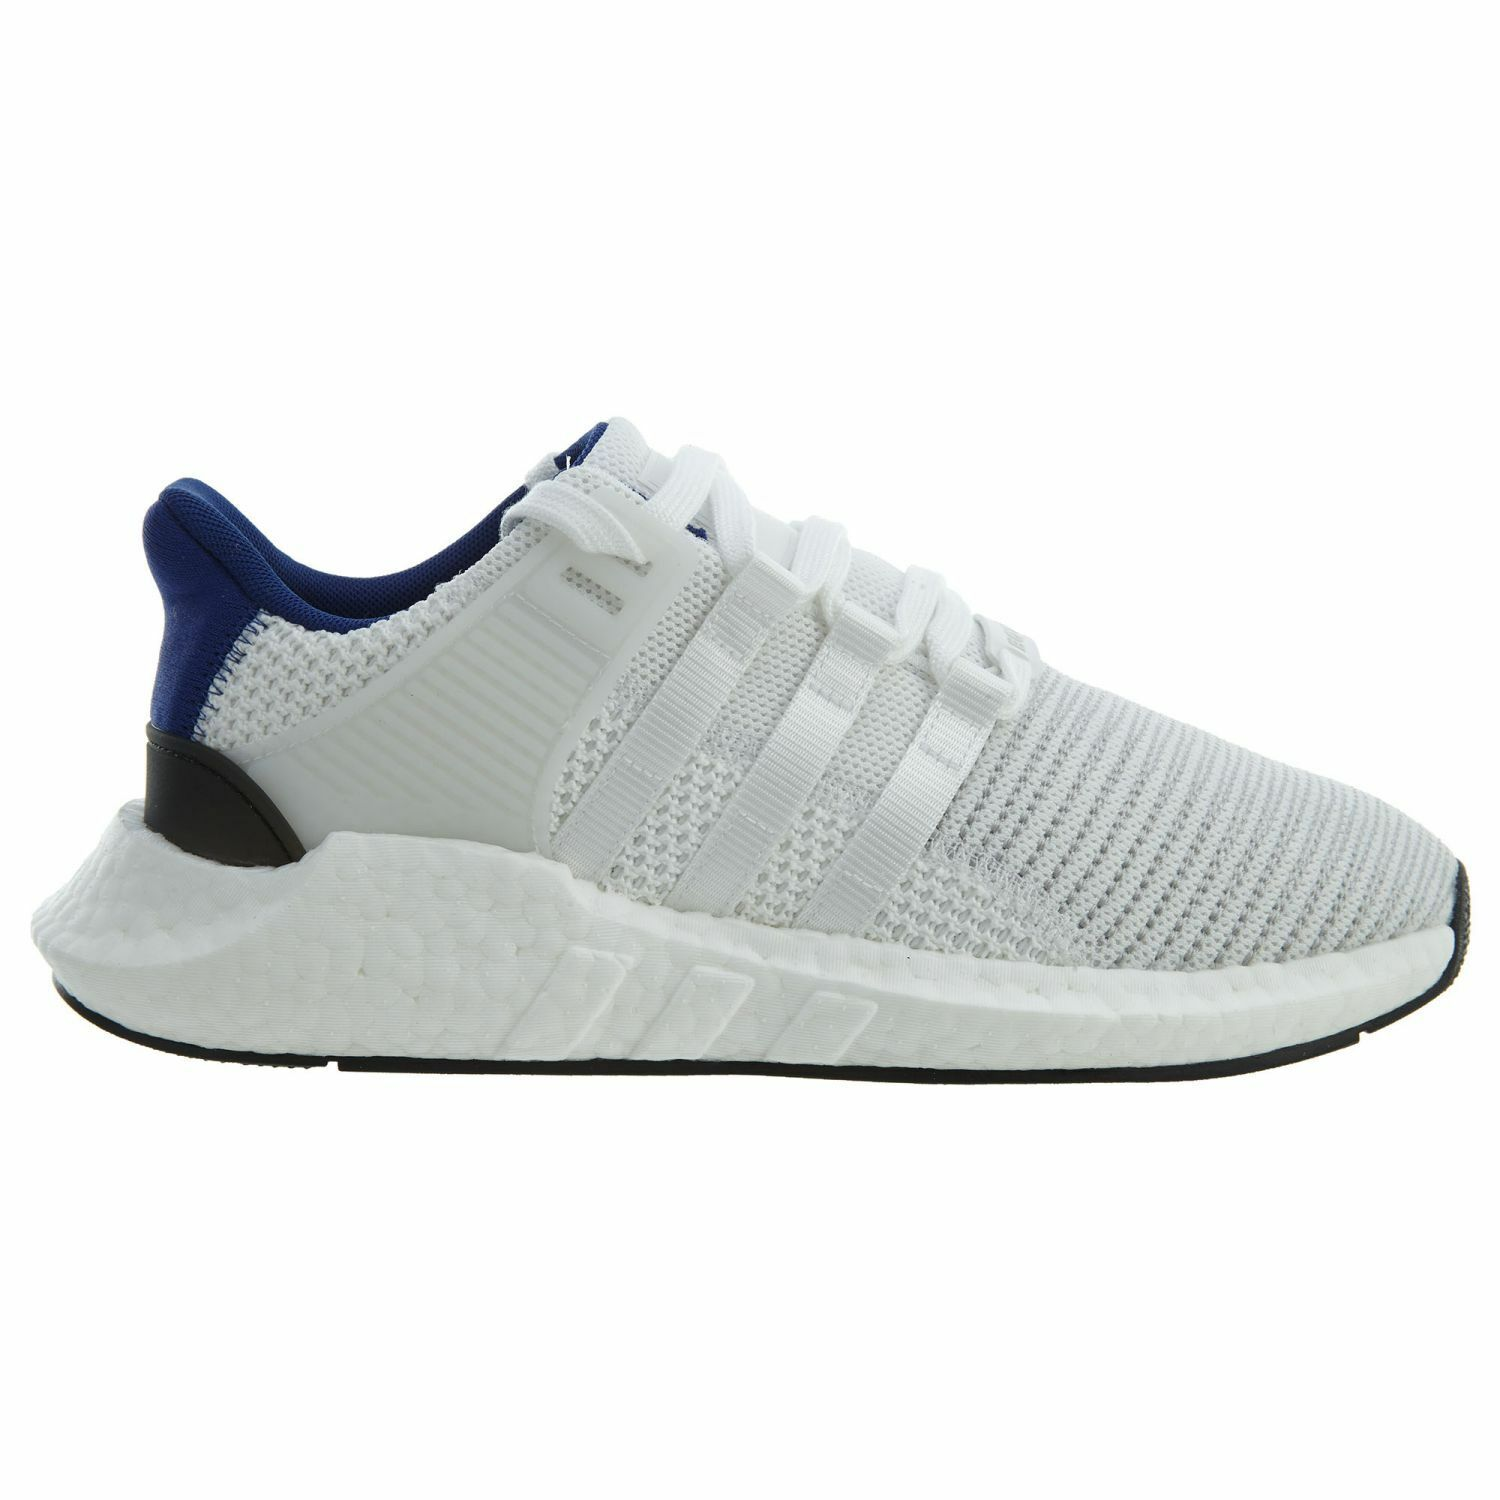 Adidas EQT Support 93/17 Mens BZ0592 White Black Boost Running Shoes Comfortable